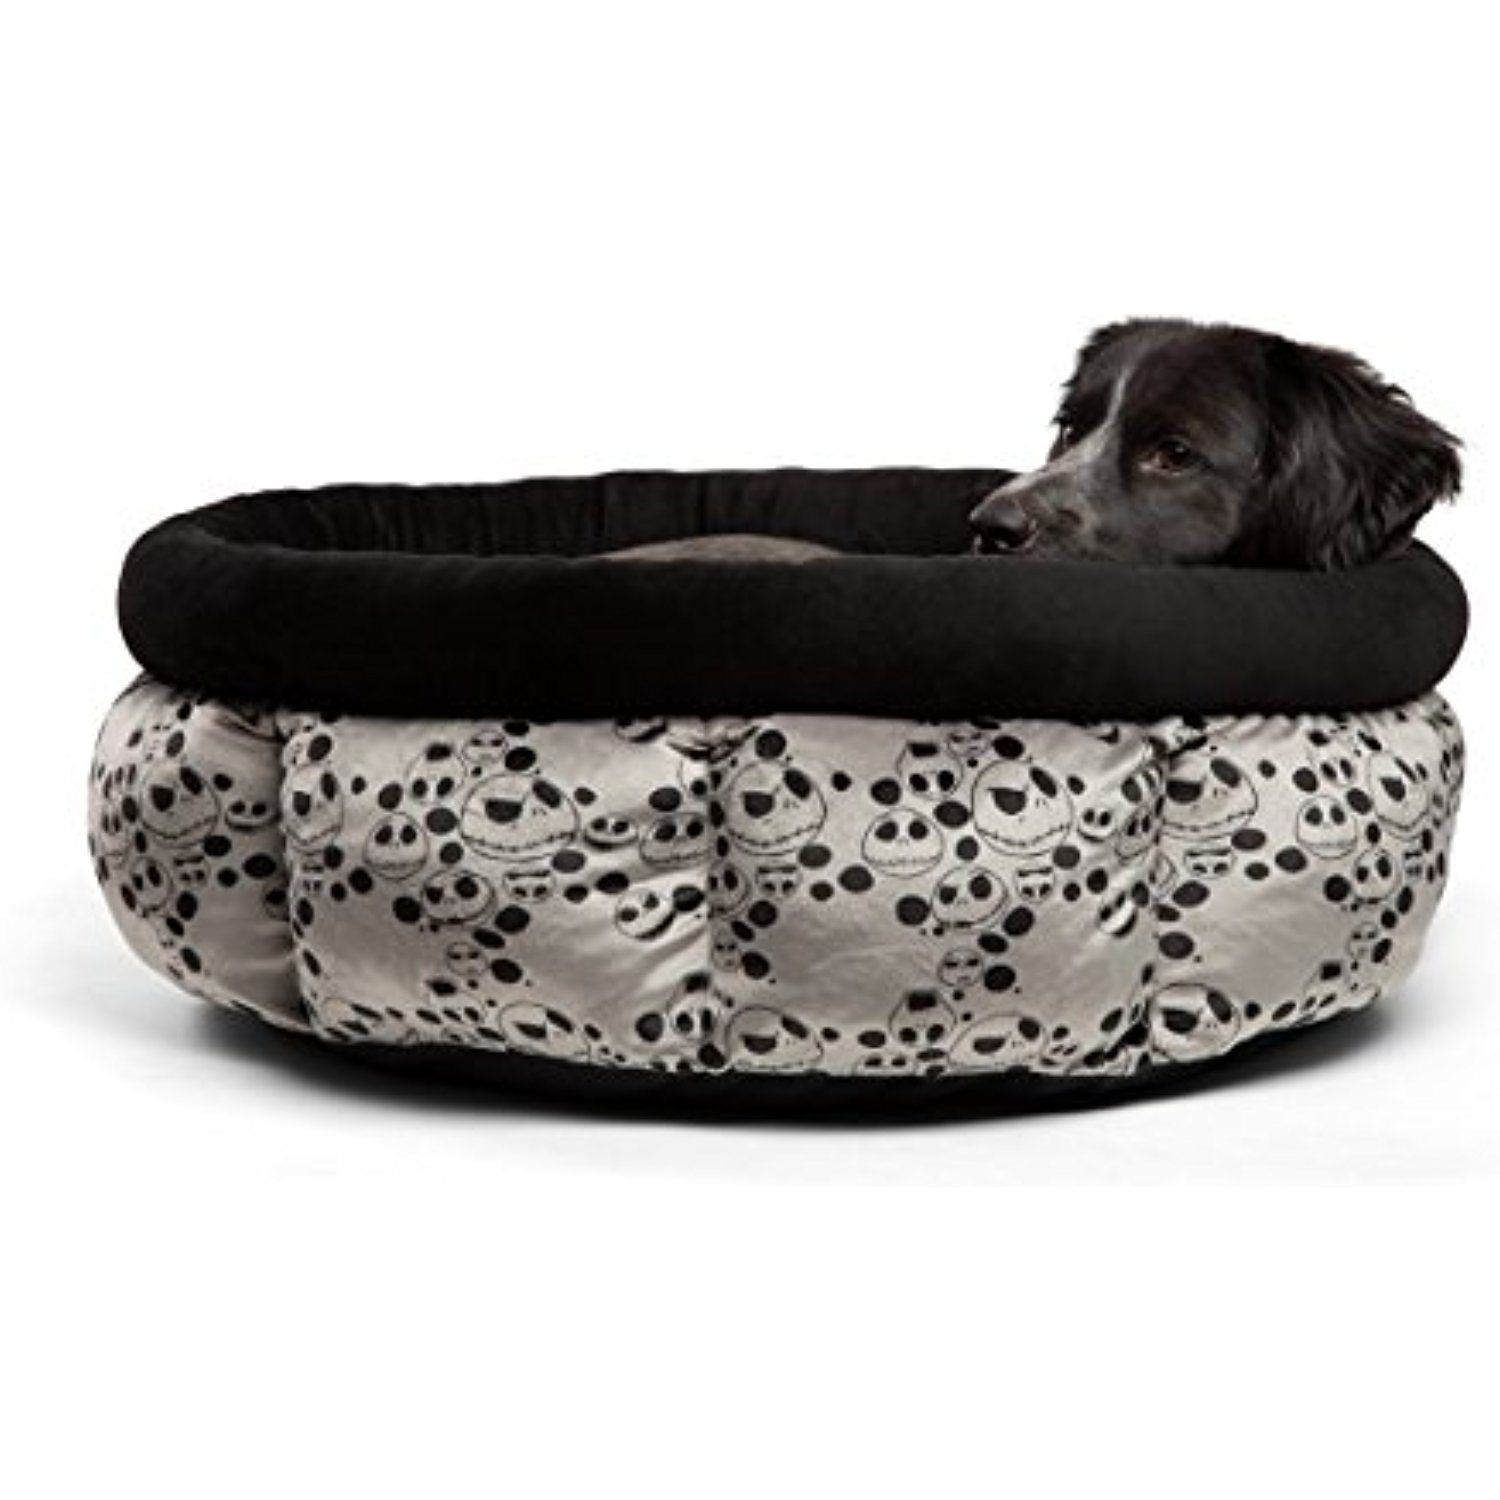 Disney Nightmare Before Christmas Jack Skellington Jumbo Cuddle Cup Dog Bed Cat Bed Machine Washable High Walls For Deep Sleep Small Pets Dog Bed Cat Bed